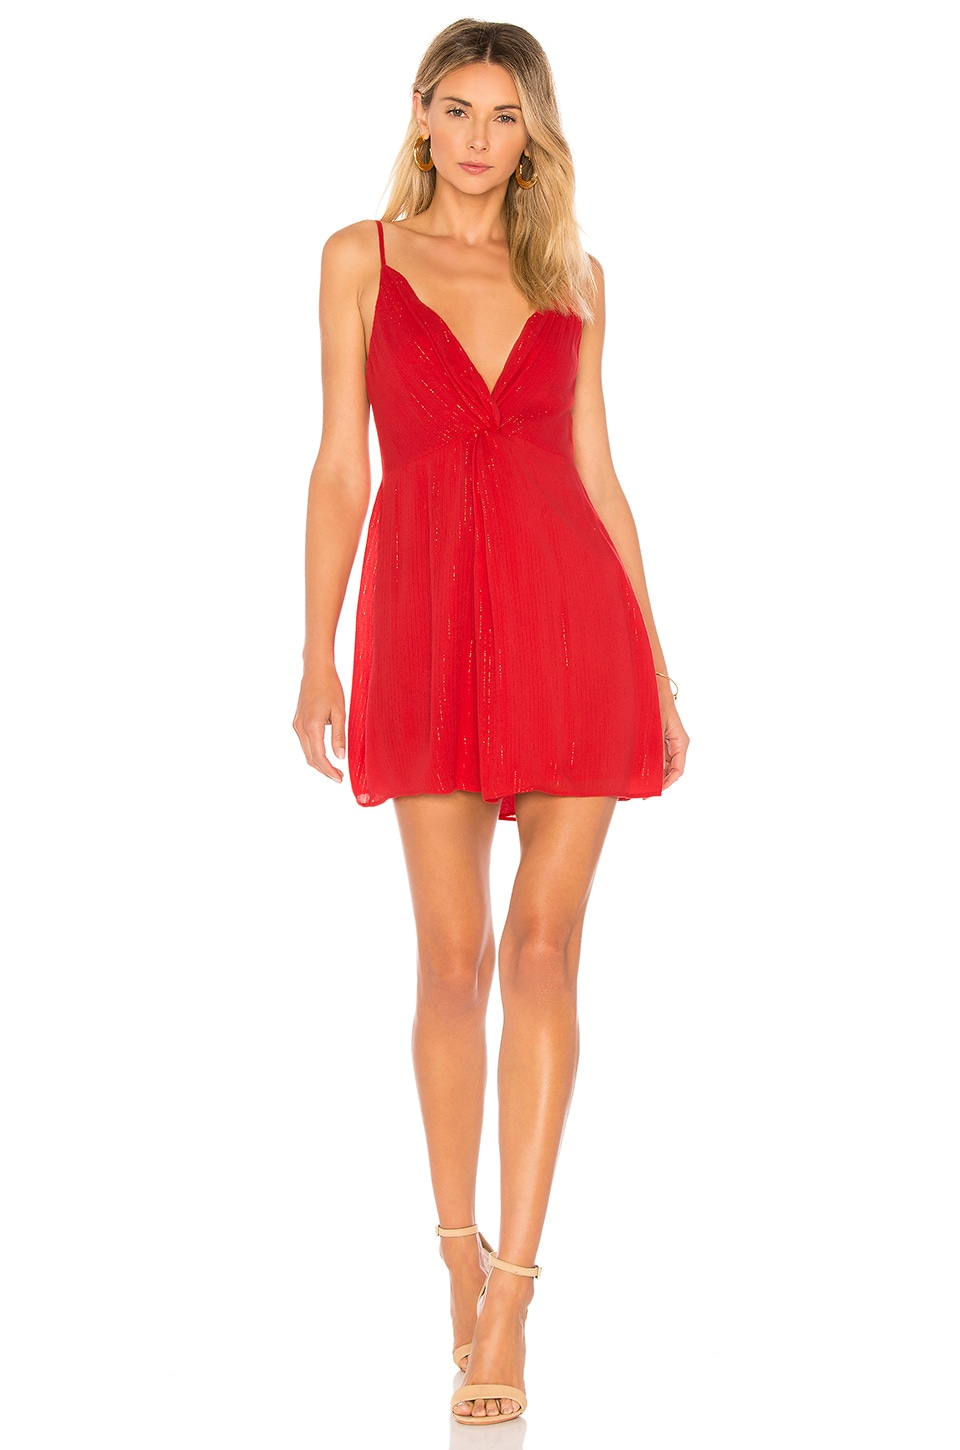 House of Harlow 1960 x REVOLVE Sharon Dress in Barbados Red